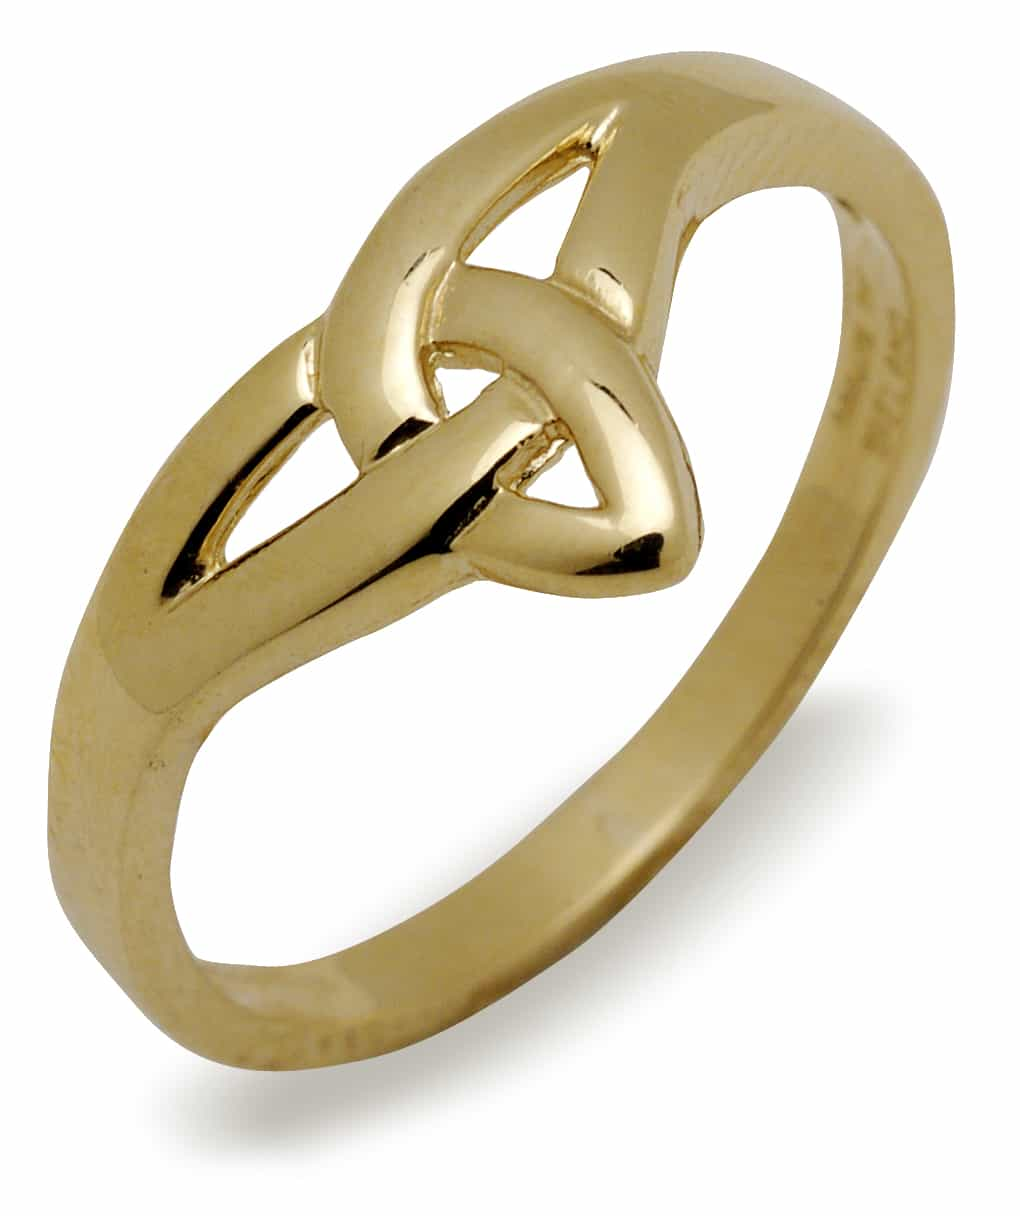 10Ct Trinity Knot Ring